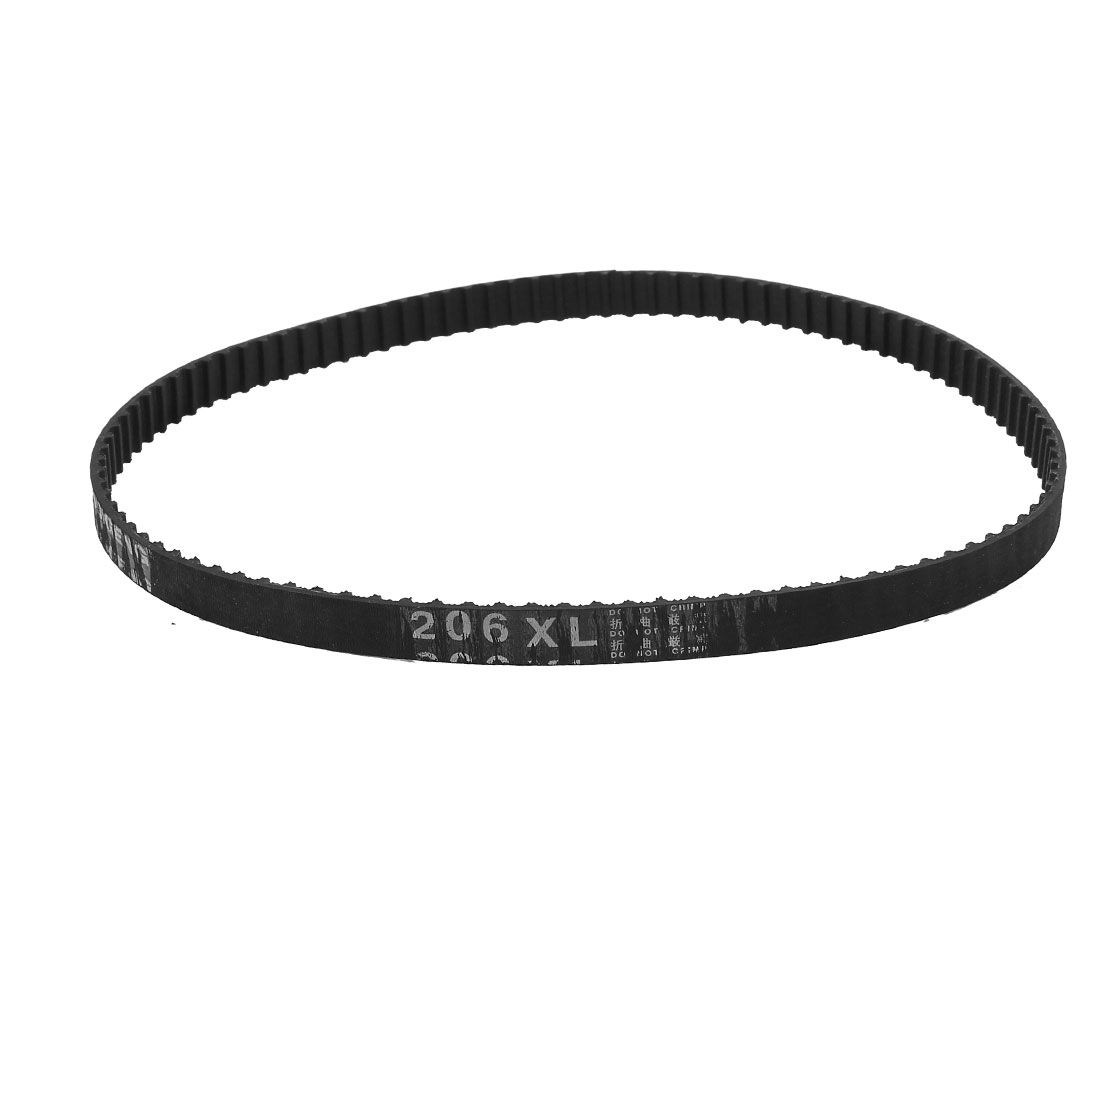 "206XL 20.6"" Girth 5.08mm Pitch 103-Teeth Black Rubber Industrial Synchro Machine Synchronous Timing Belt"